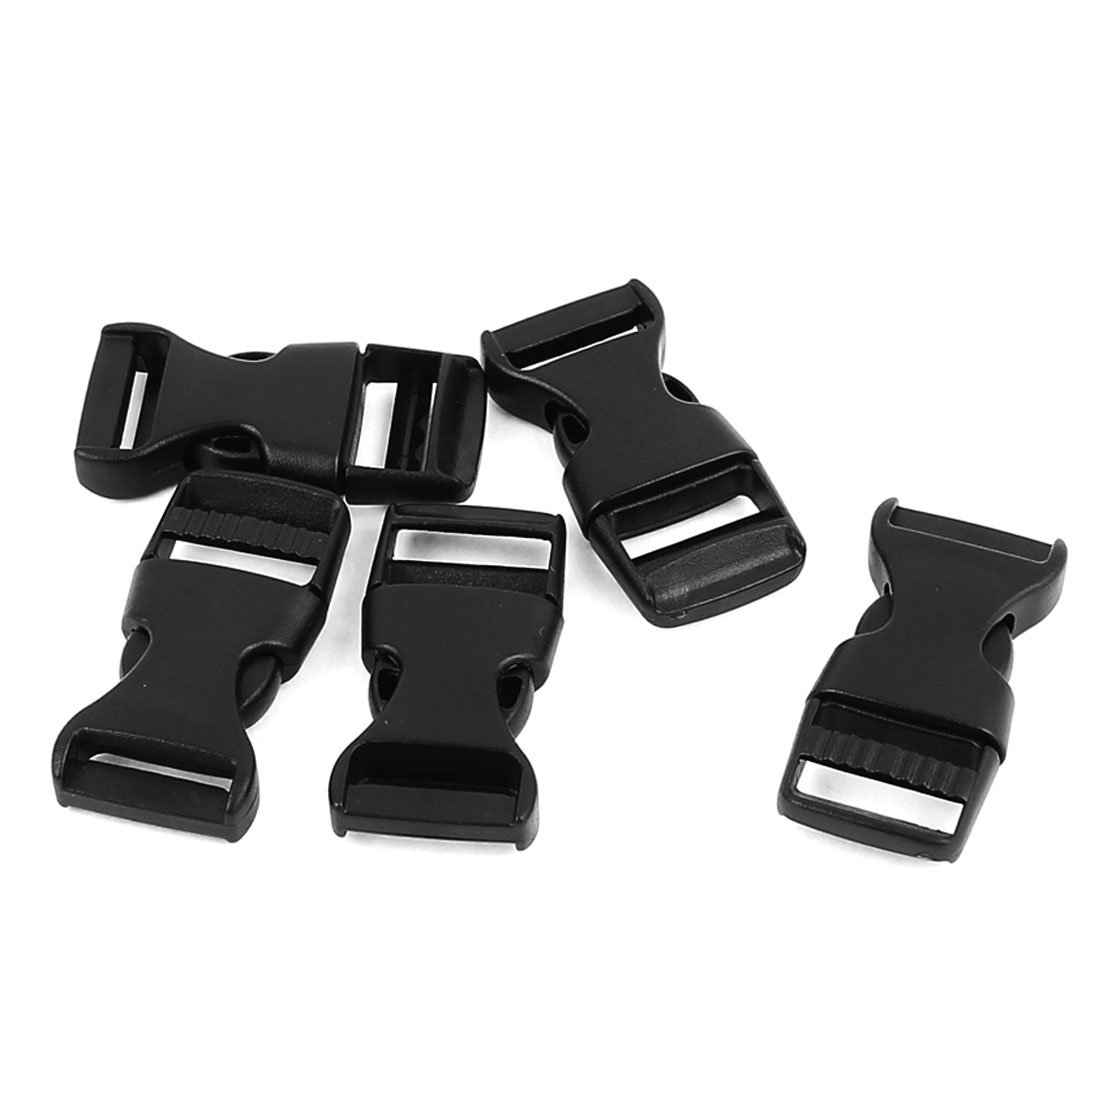 uxcell Plastic Side Quick Release Clasp Buckles 15mm Webbing Strap 5pcs Black a15122800ux0937